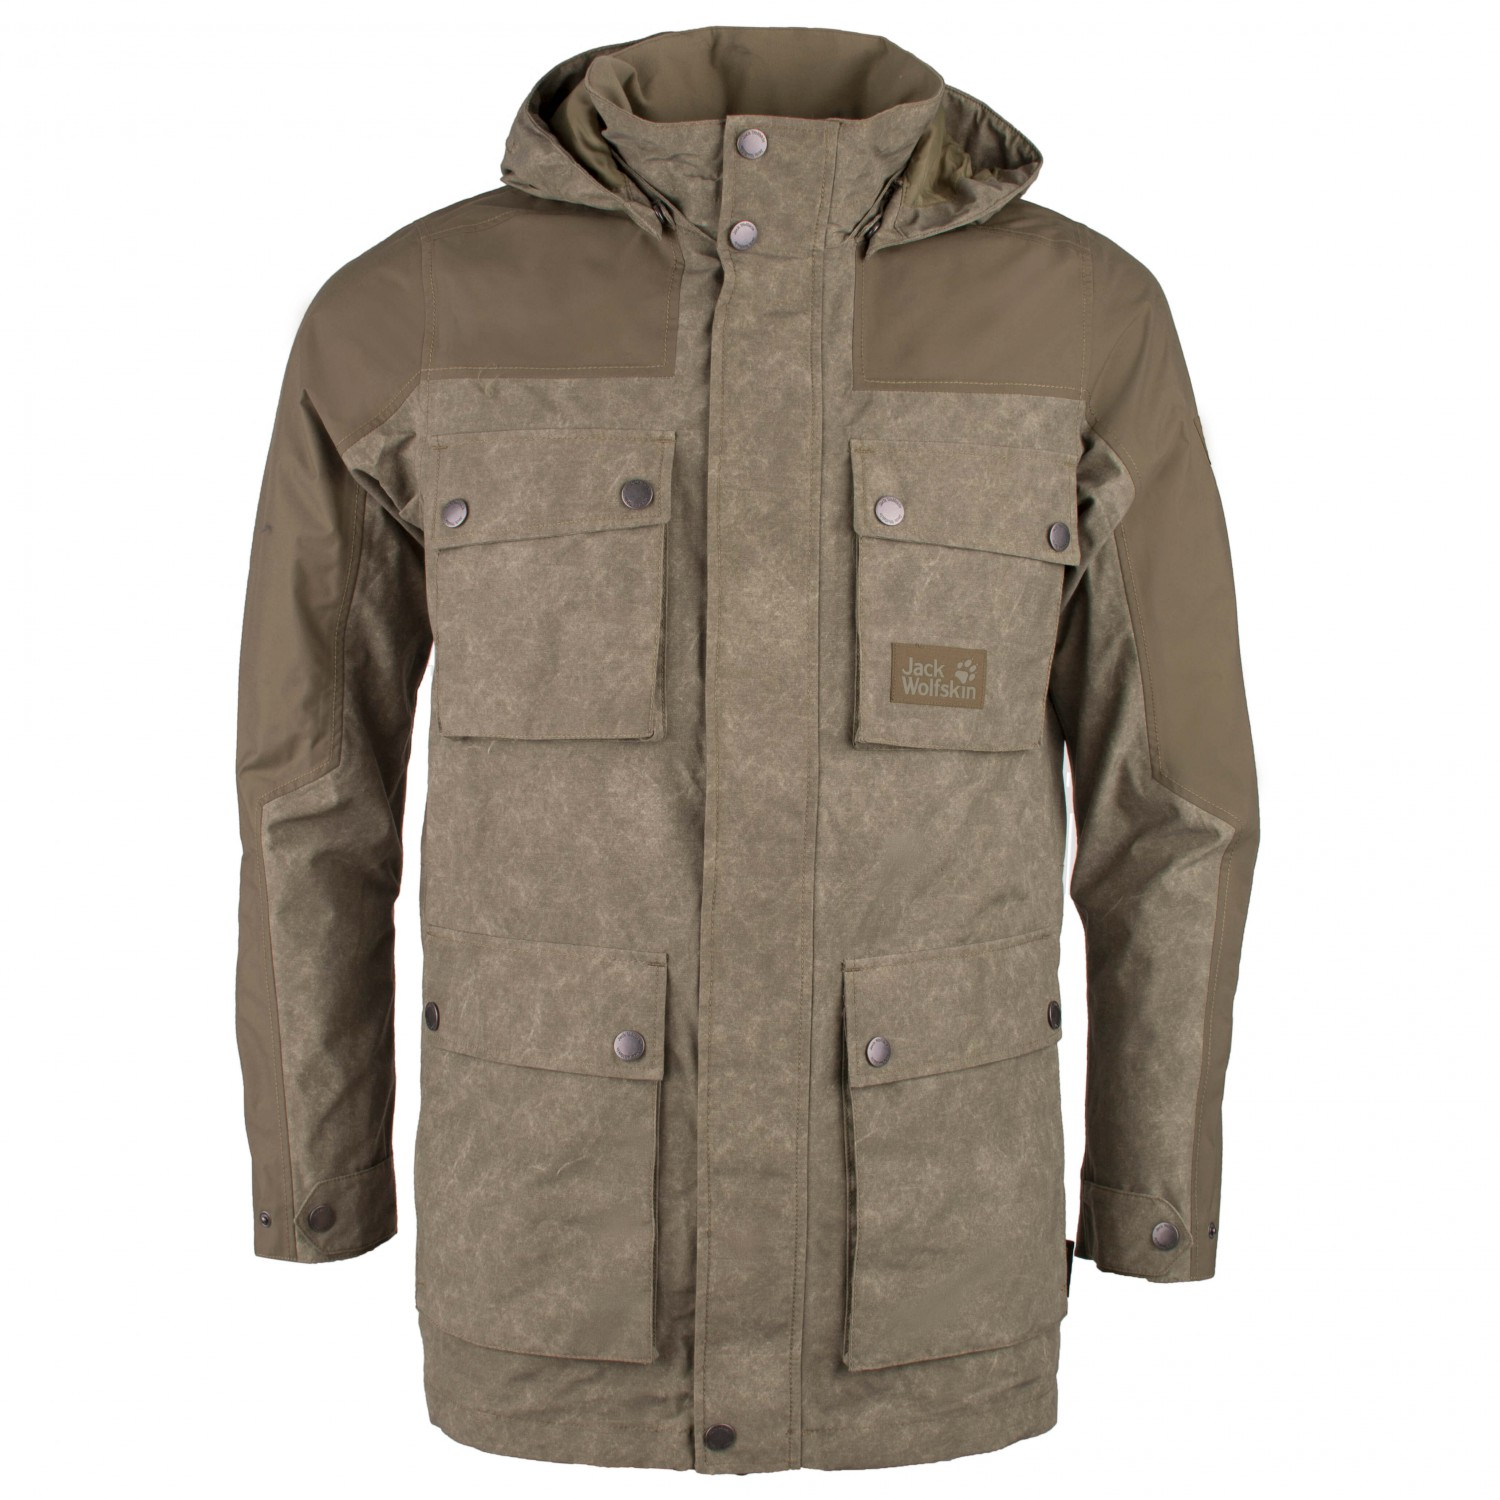 5414c980eba Jack Wolfskin Cavendish Jacket - Coat Men's | Free EU Delivery ...